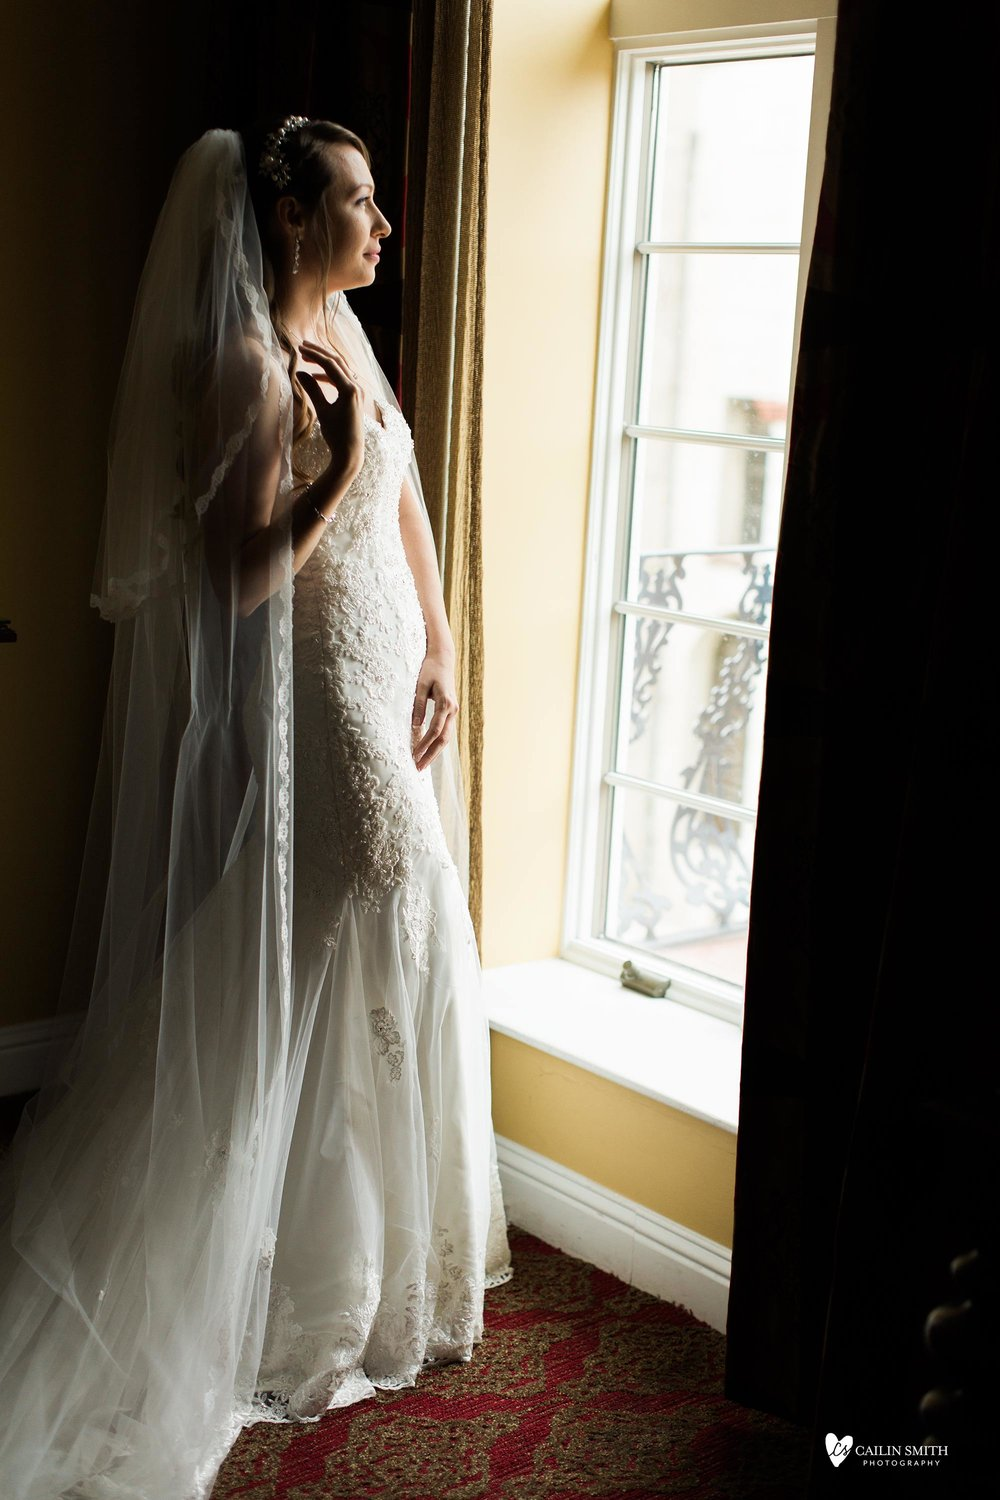 Tetiana_James_Wedding_Blog_15.jpg